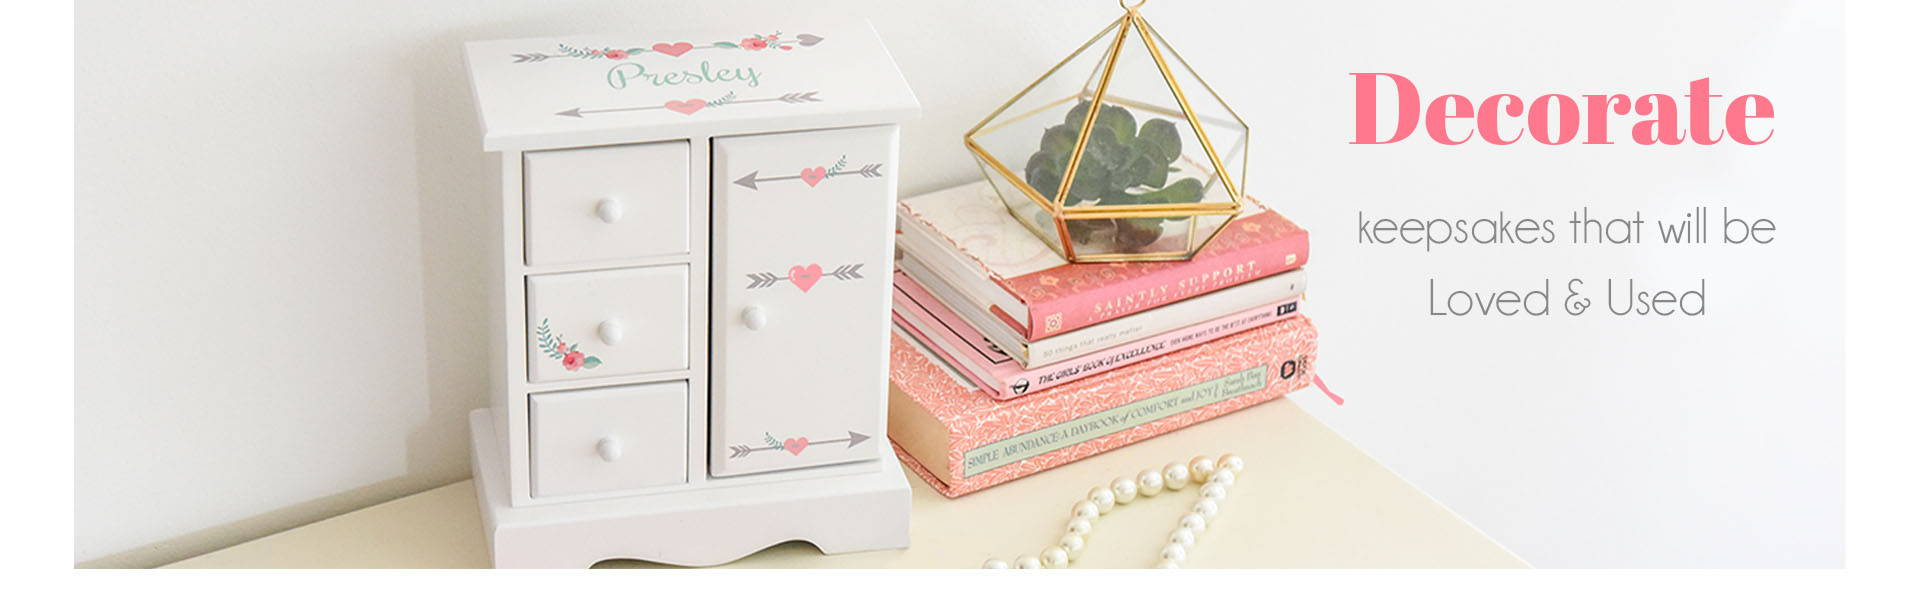 Decorate keepsakes that will be Loved & Used